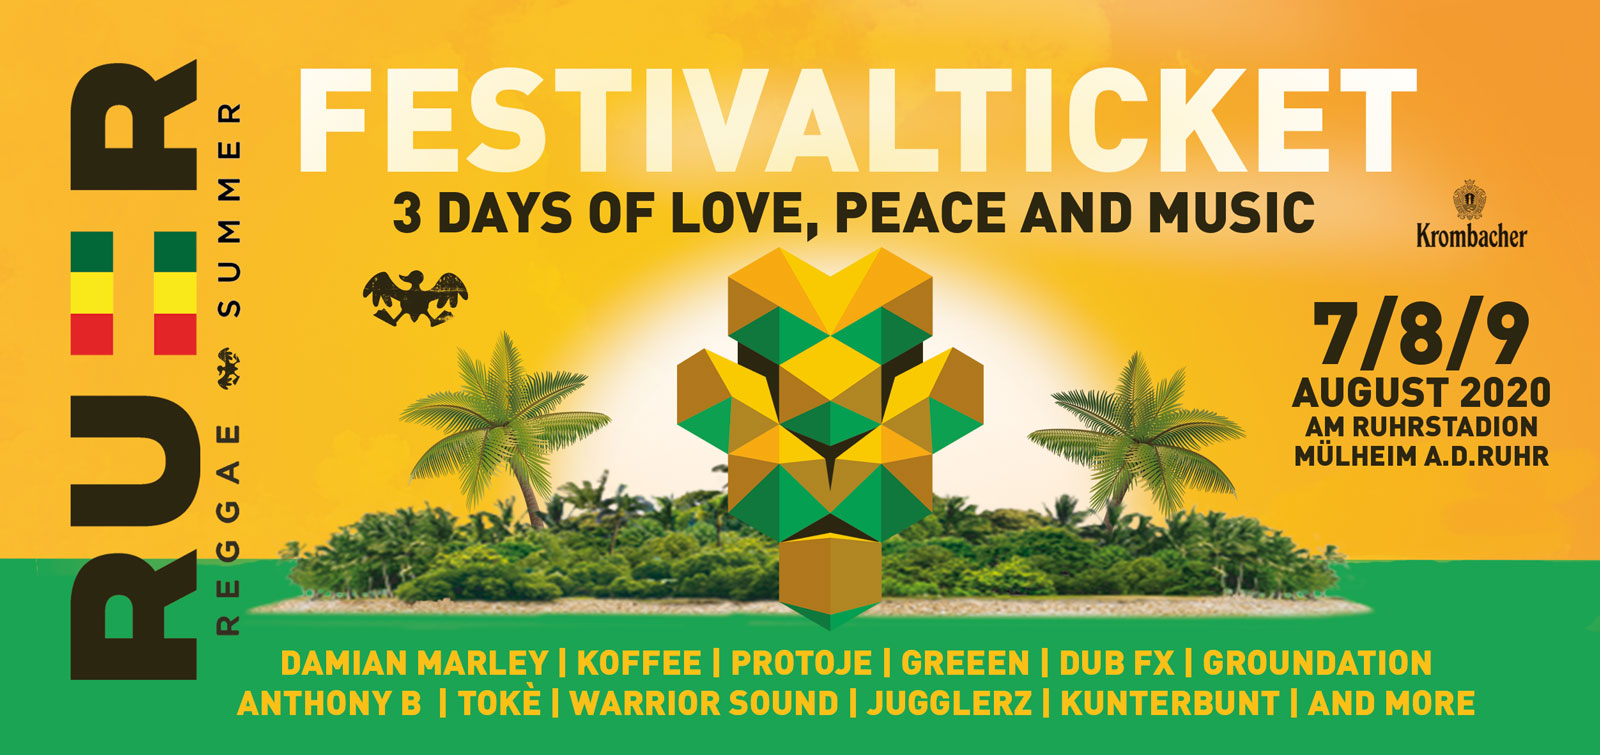 Ticket für das Ruhr Reggae Summer 2020 // Quelle: https://www.ruhr-reggae-summer.de/shop/images/p/154.jpg